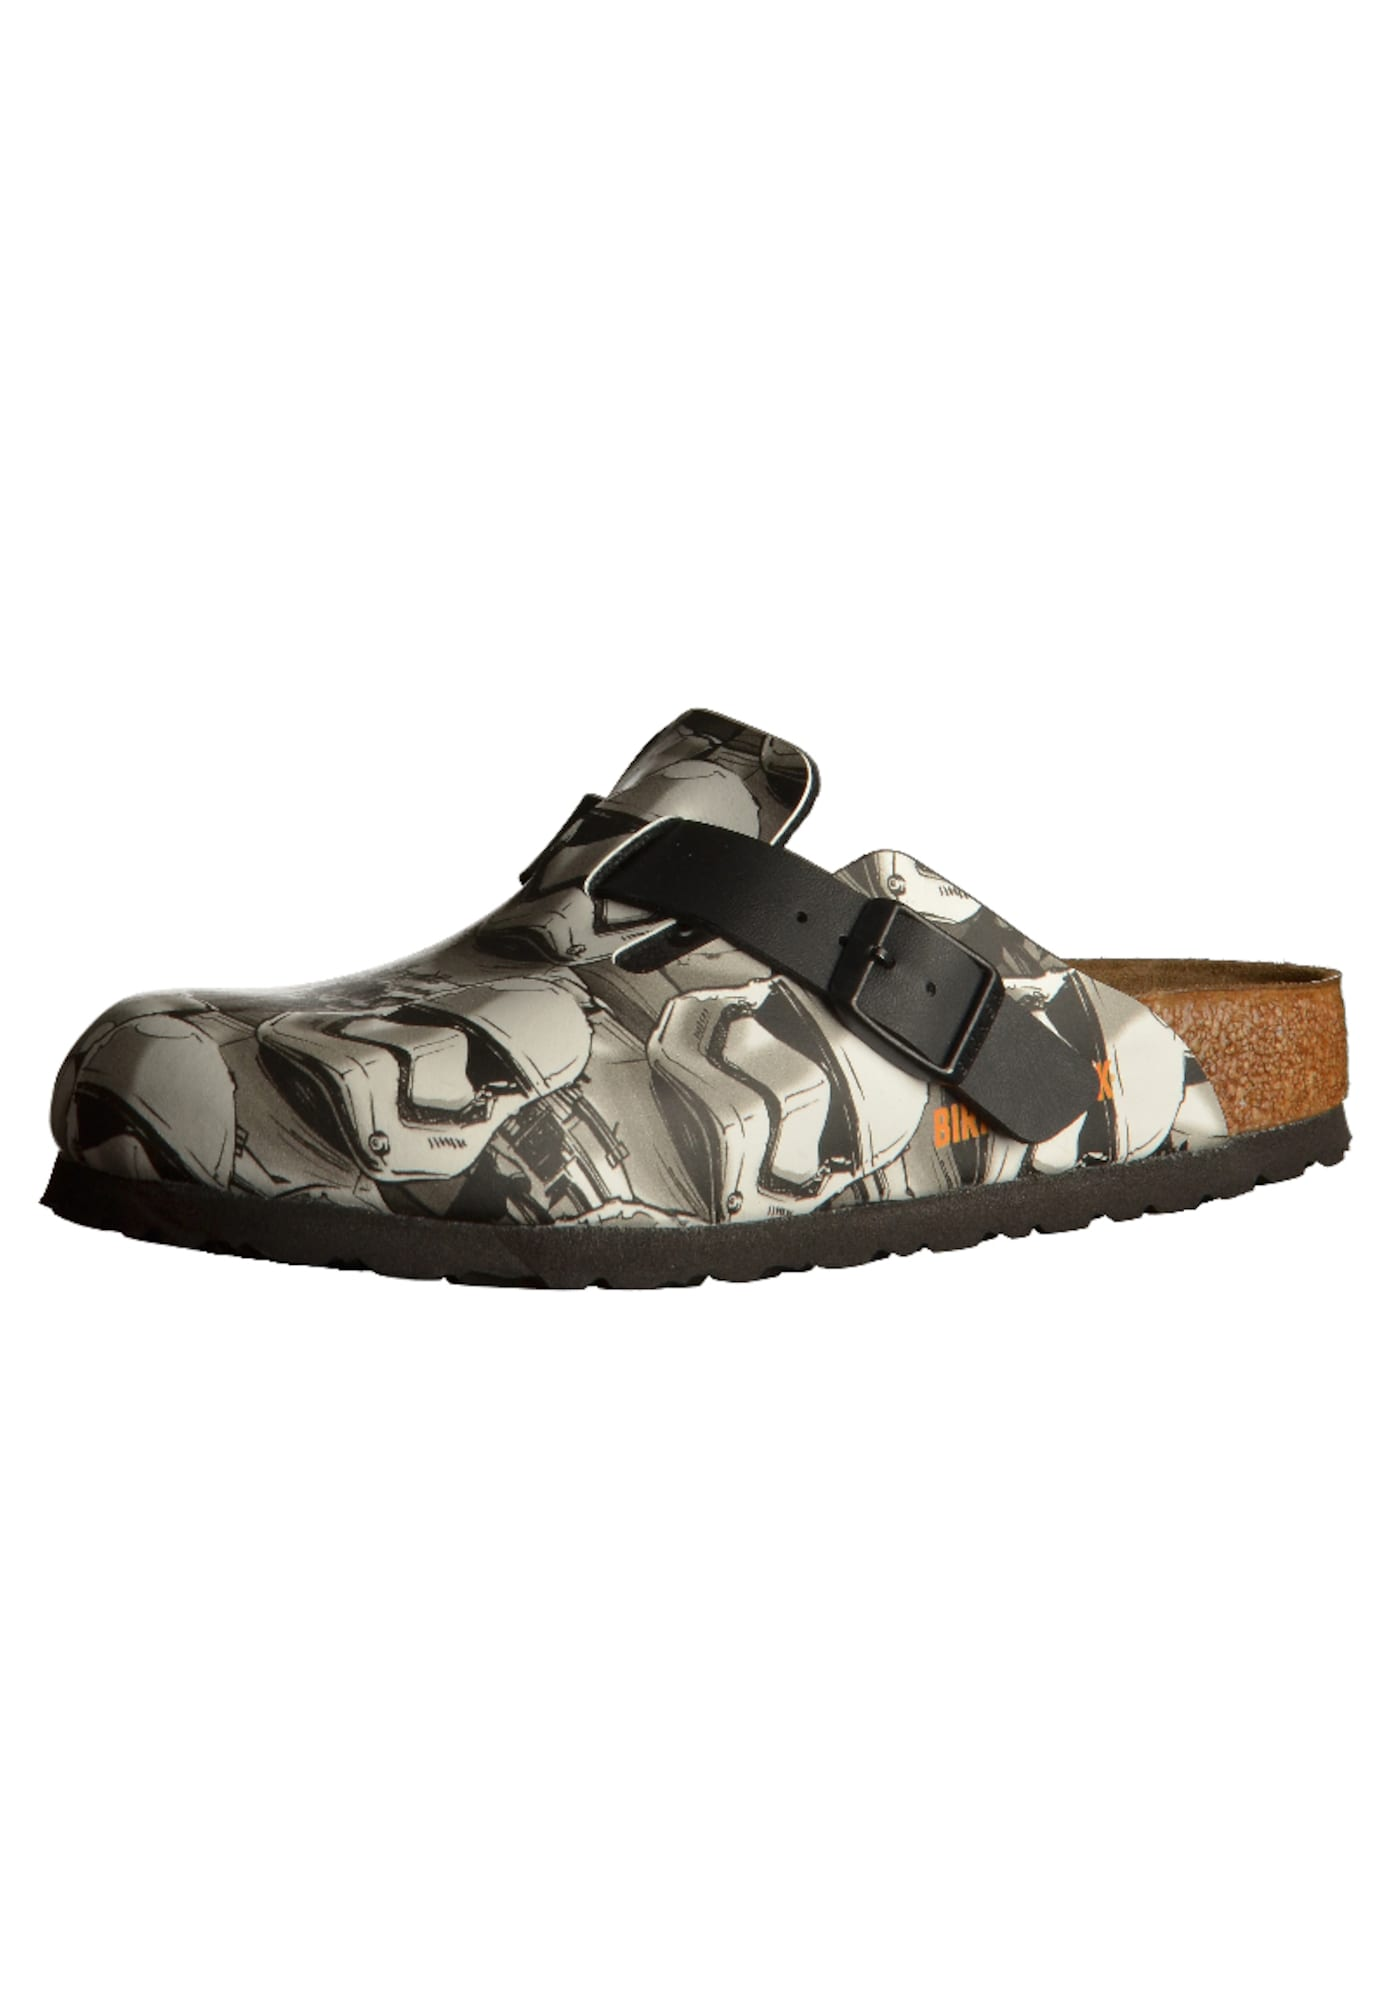 Clogs 'Boston - Star Wars' | Schuhe > Clogs & Pantoletten > Clogs | Birkenstock